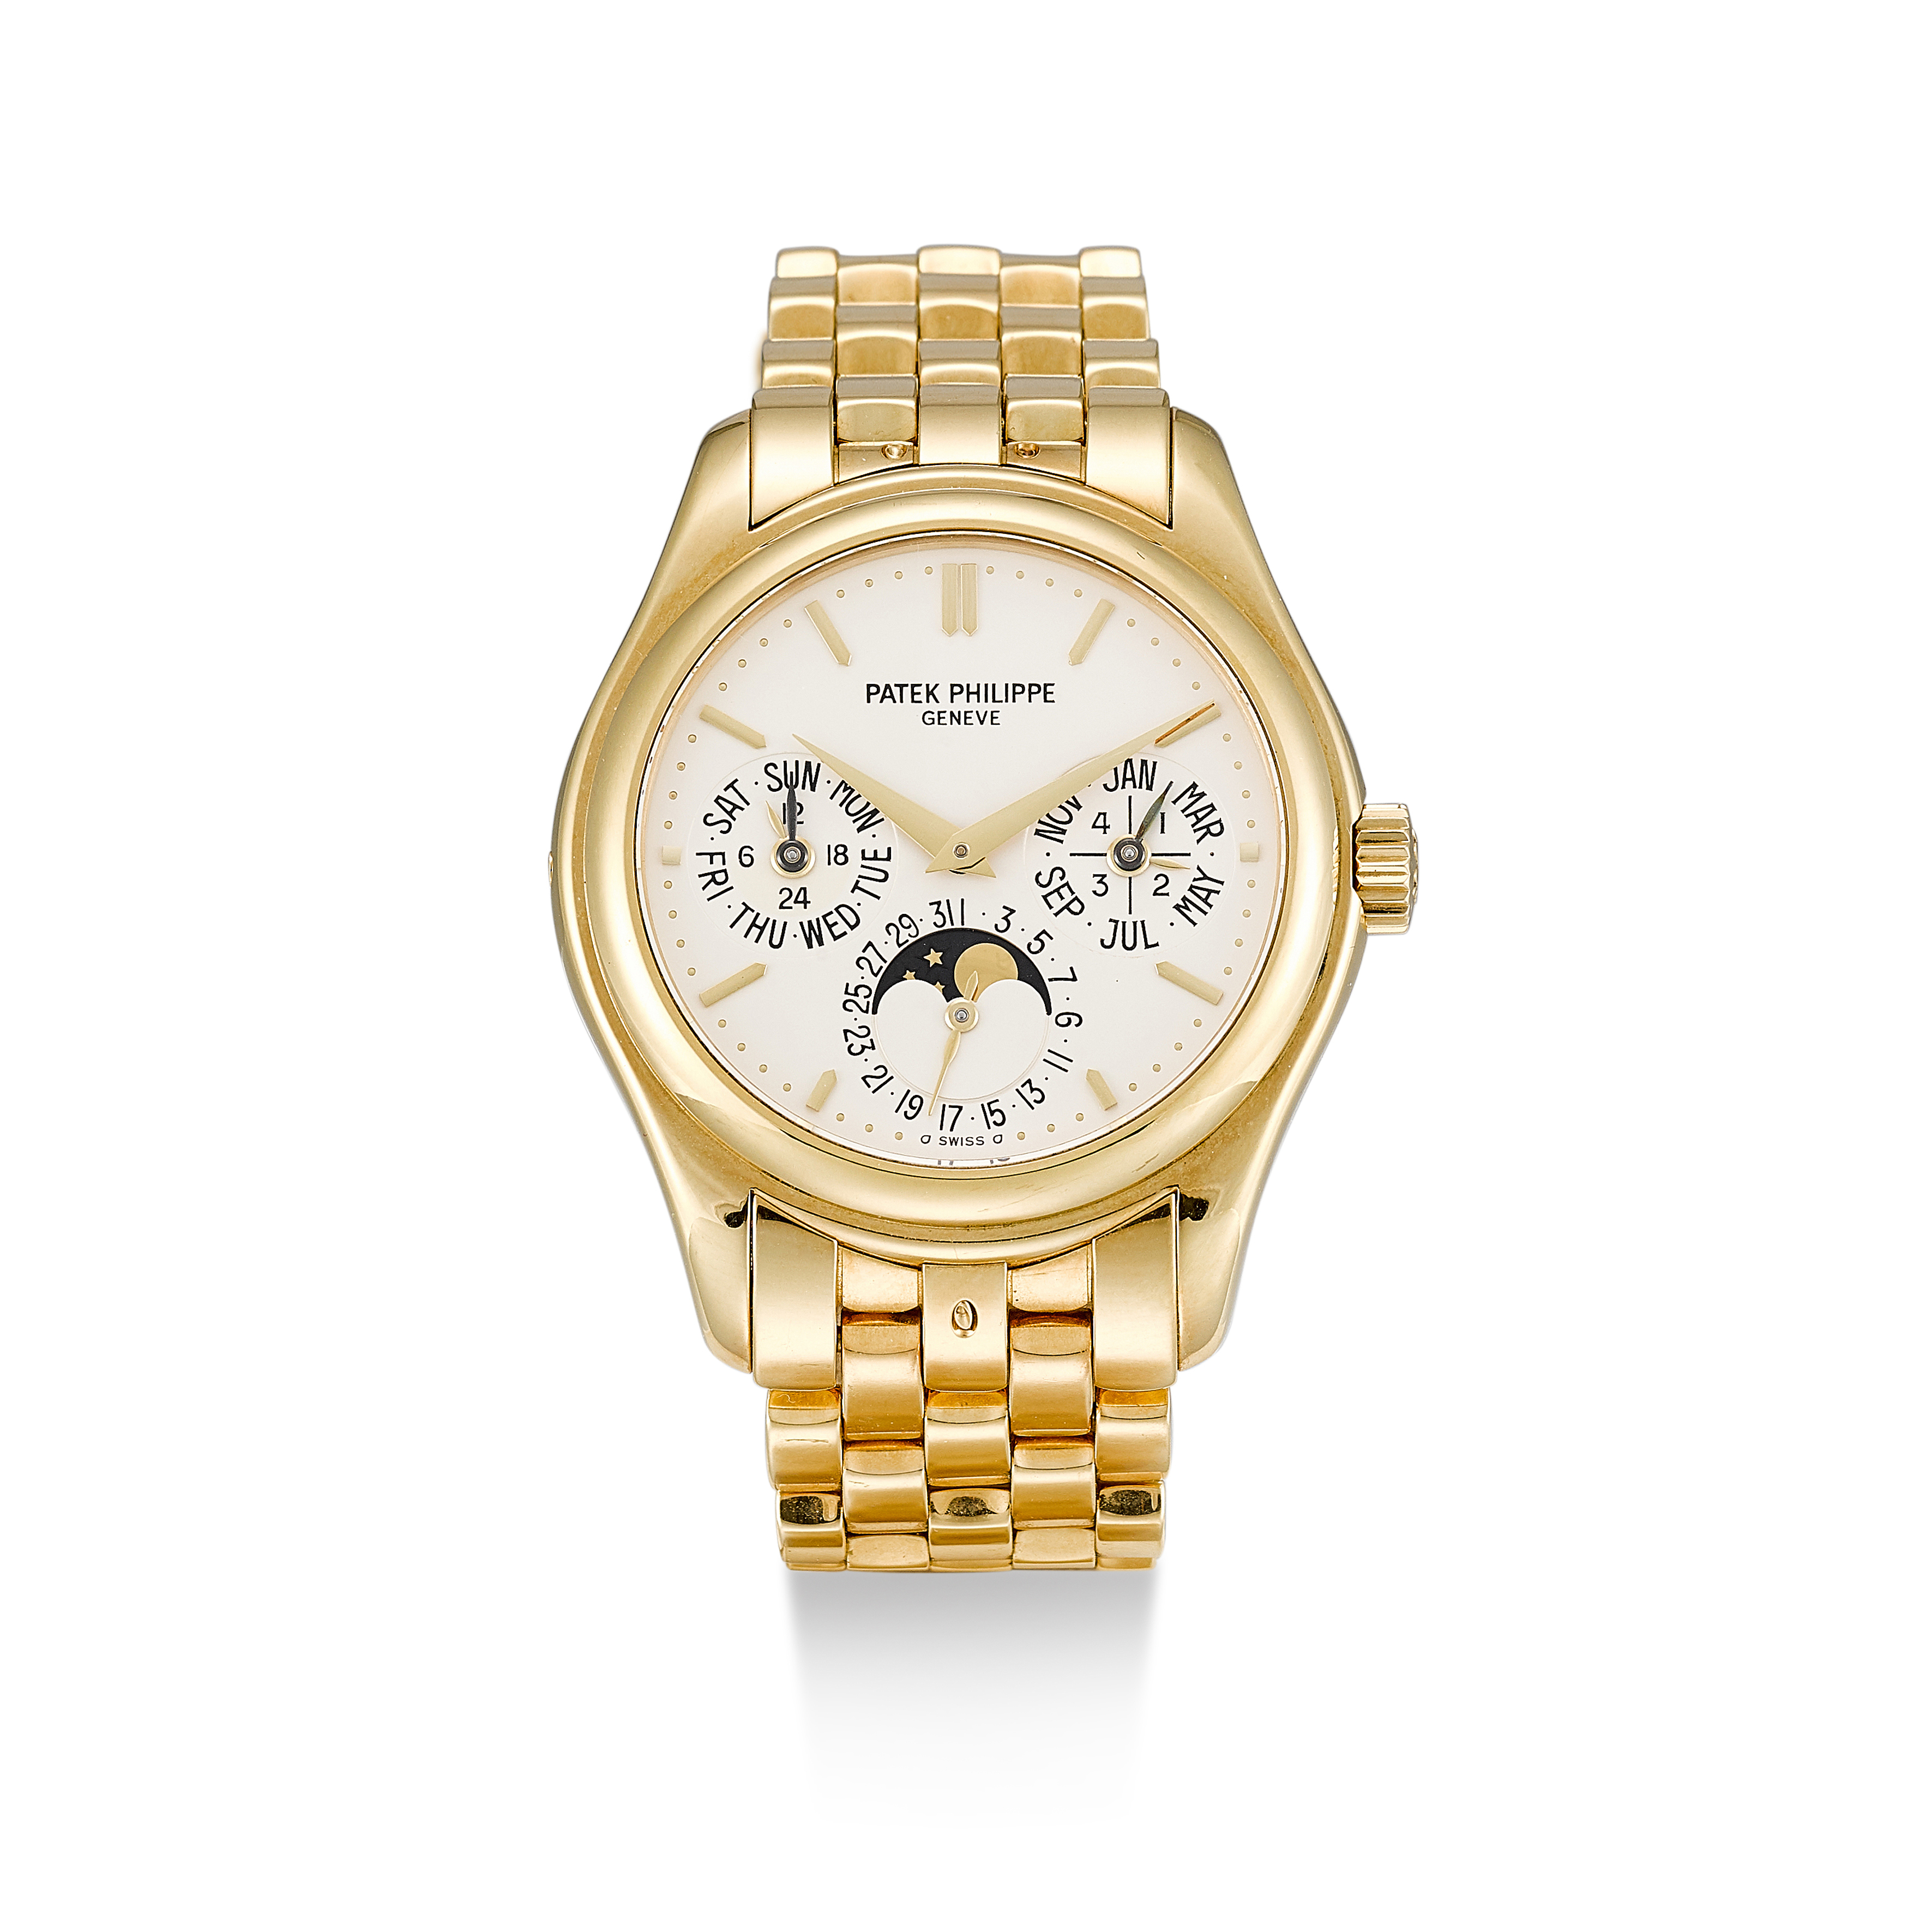 View full screen - View 1 of Lot 138. PATEK PHILIPPE     REFERENCE 5136,  A YELLOW GOLD PERPETUAL CALENDAR WRISTWATCH WITH MOON PHASES, 24 HOURS AND LEAP YEAR INDICATION, CIRCA 2008.